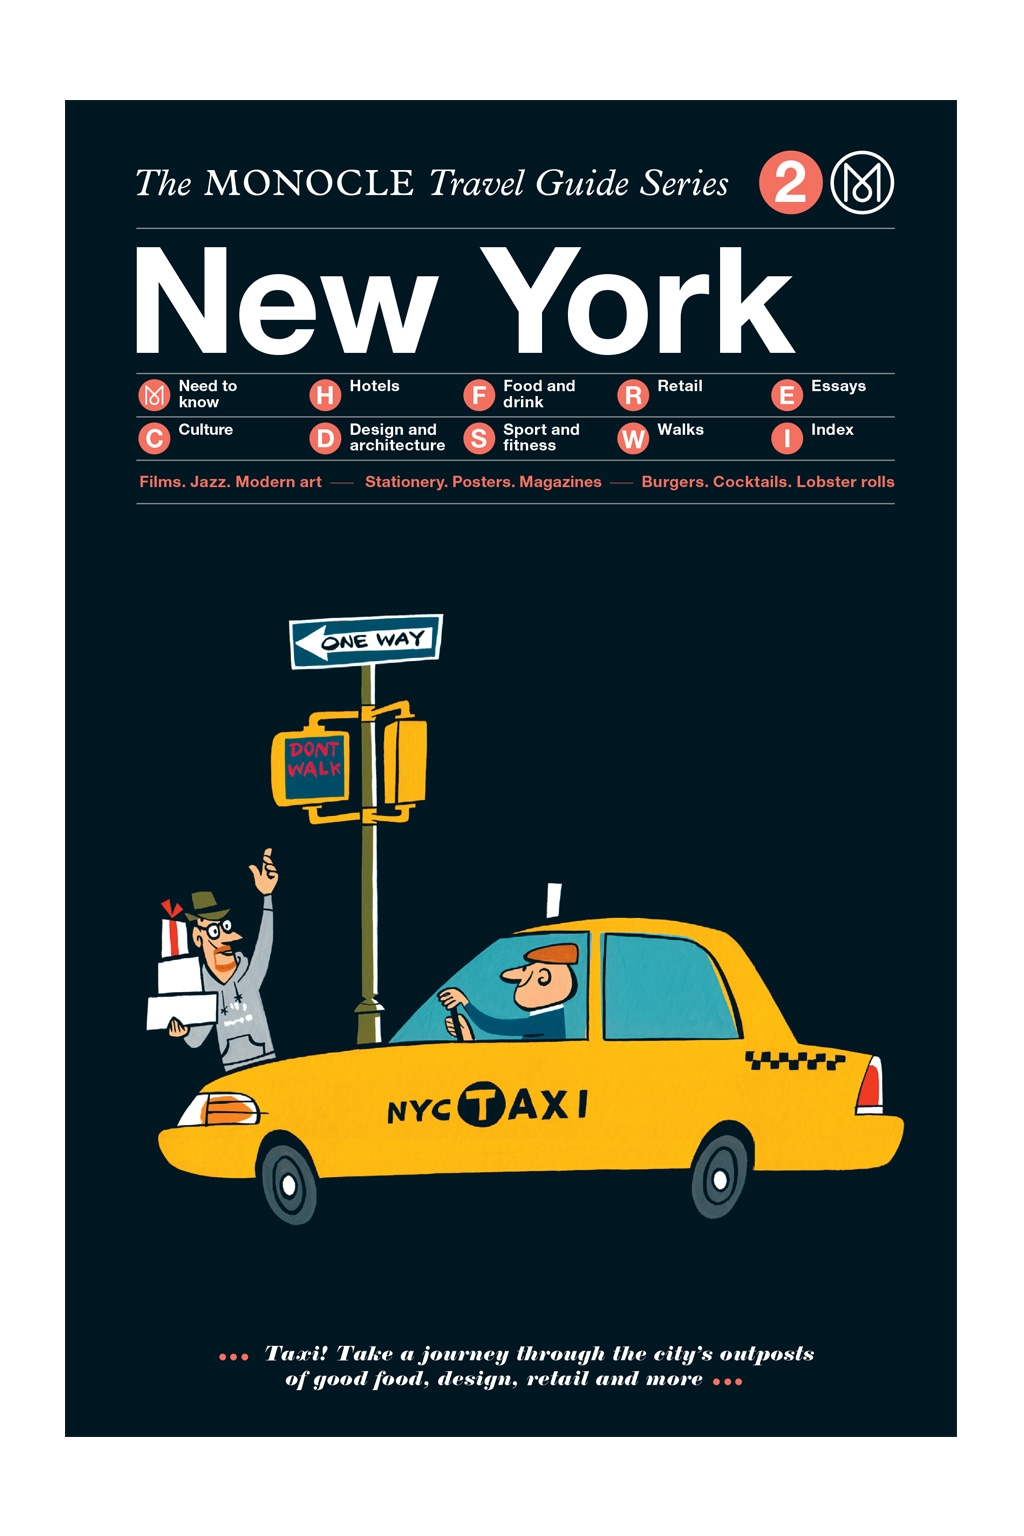 The Monocle Travel Guide Series - New York